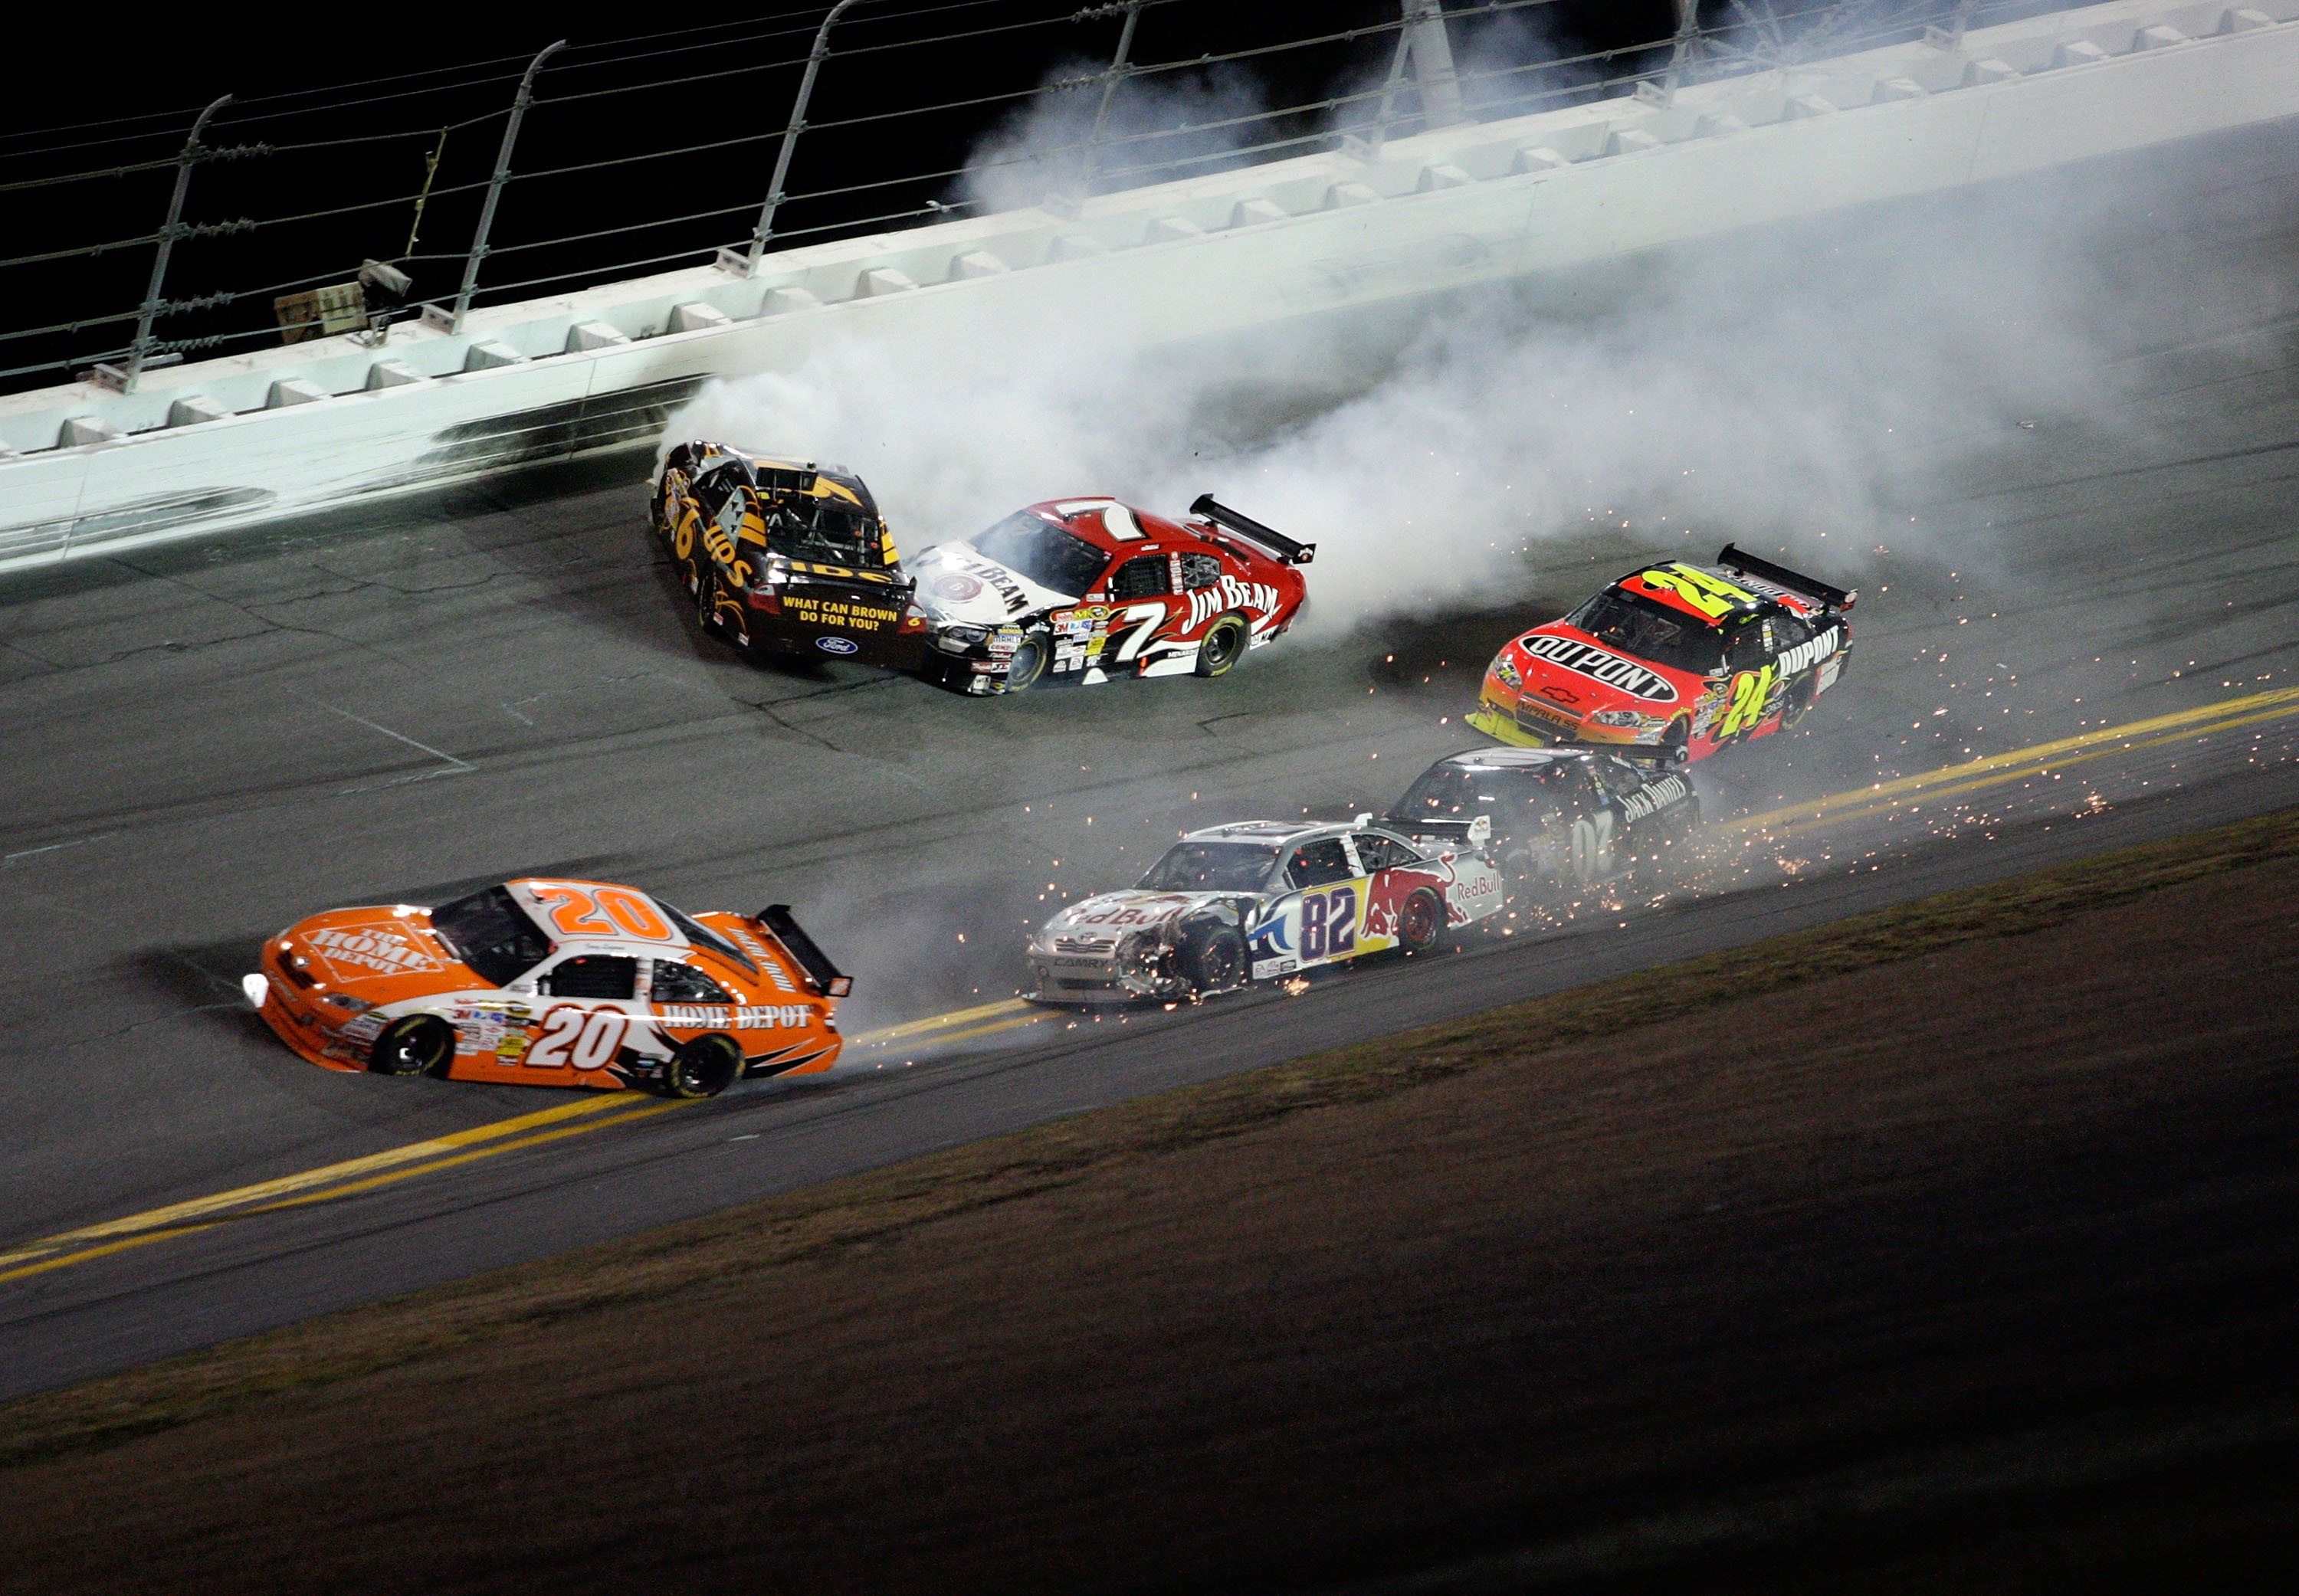 Joey Logano's Bud Shootout ended with this incident in 2010.